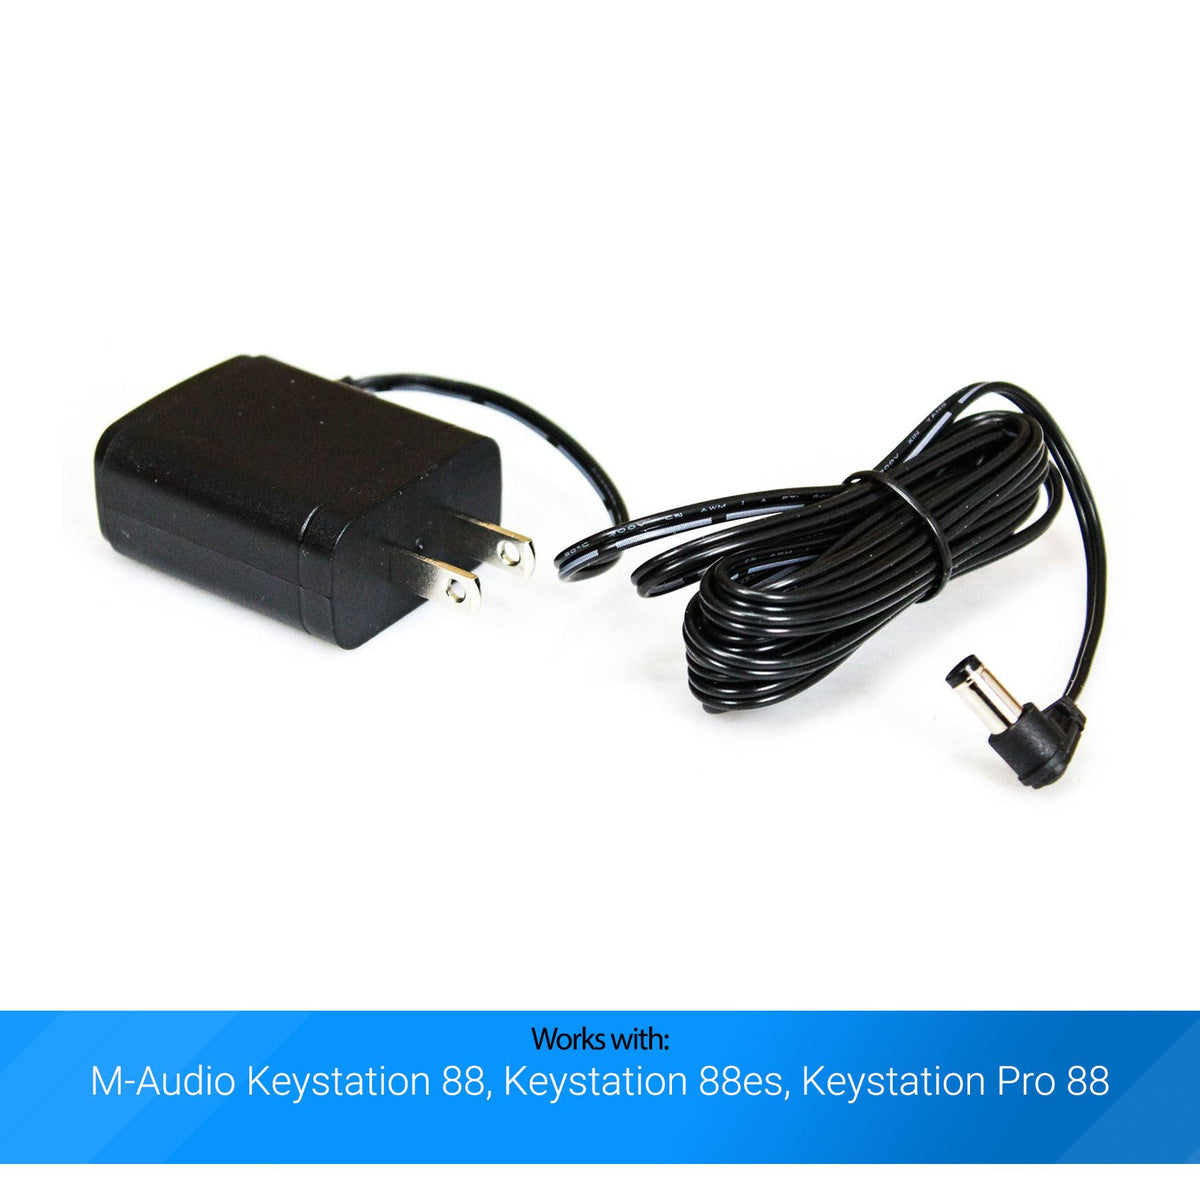 M-Audio Keystation 88 / Keystation 88es / Keystation Pro 88 Power Adapter